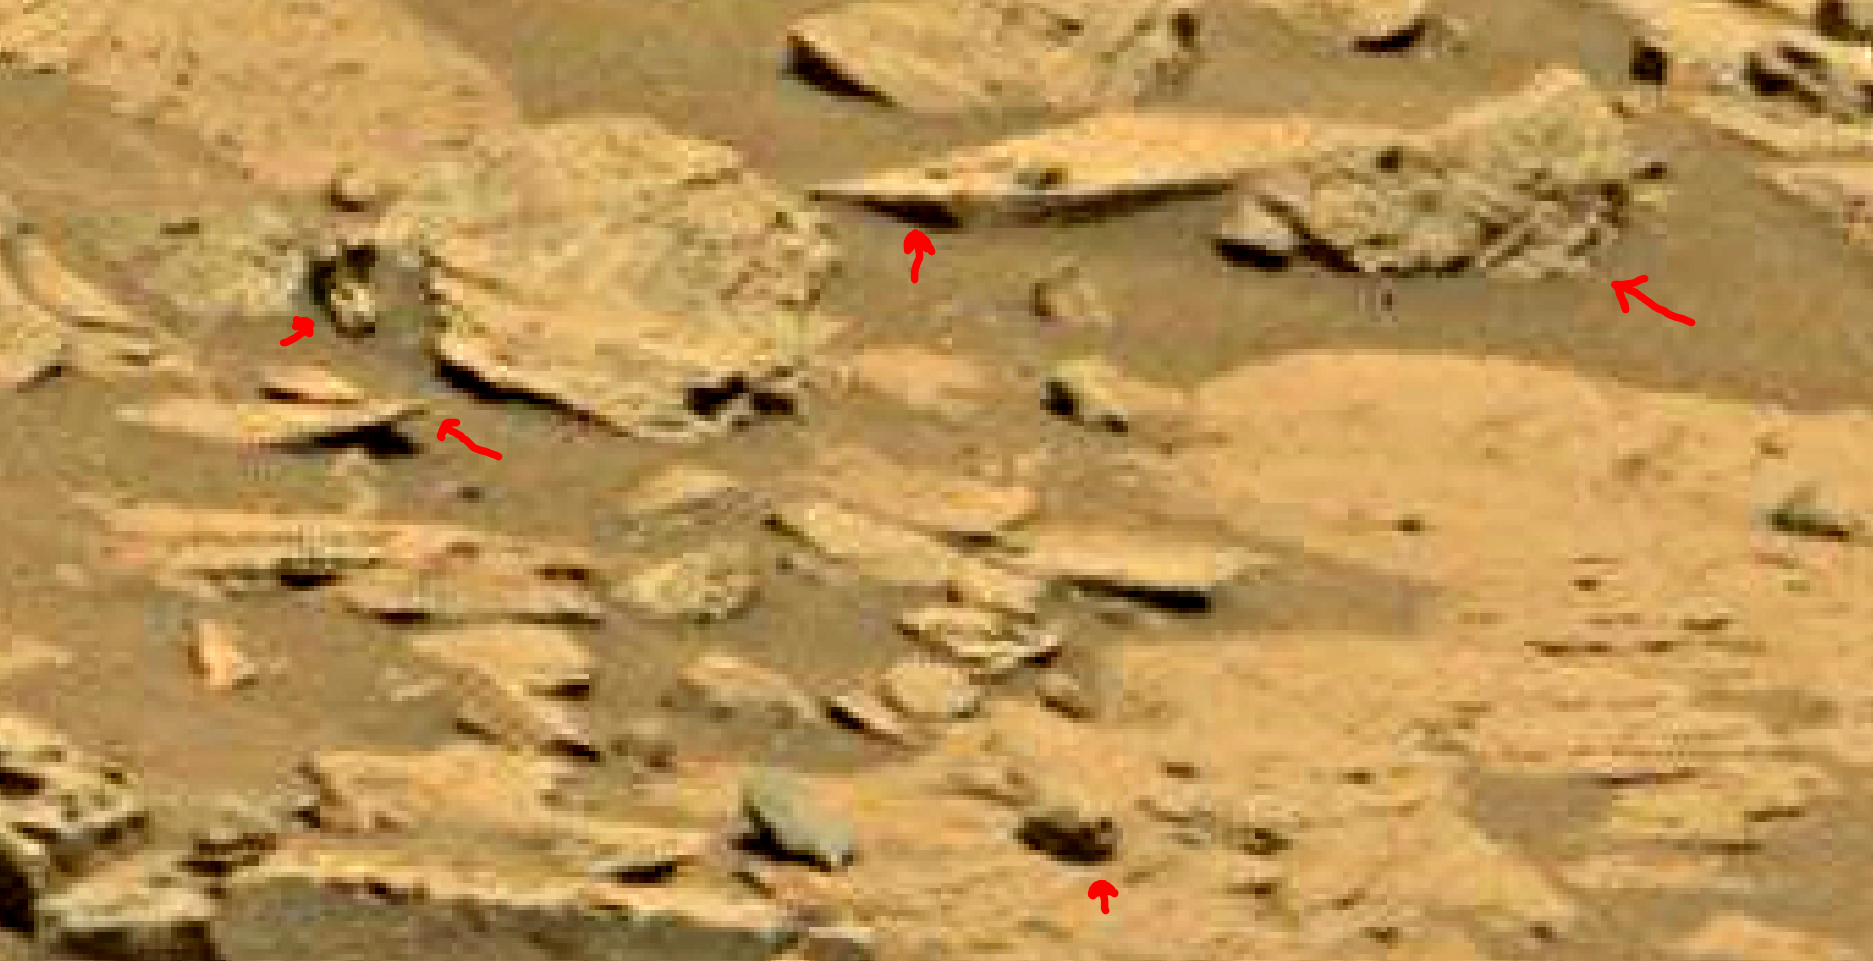 mars sol 1353 anomaly-artifacts 63 was life on mars